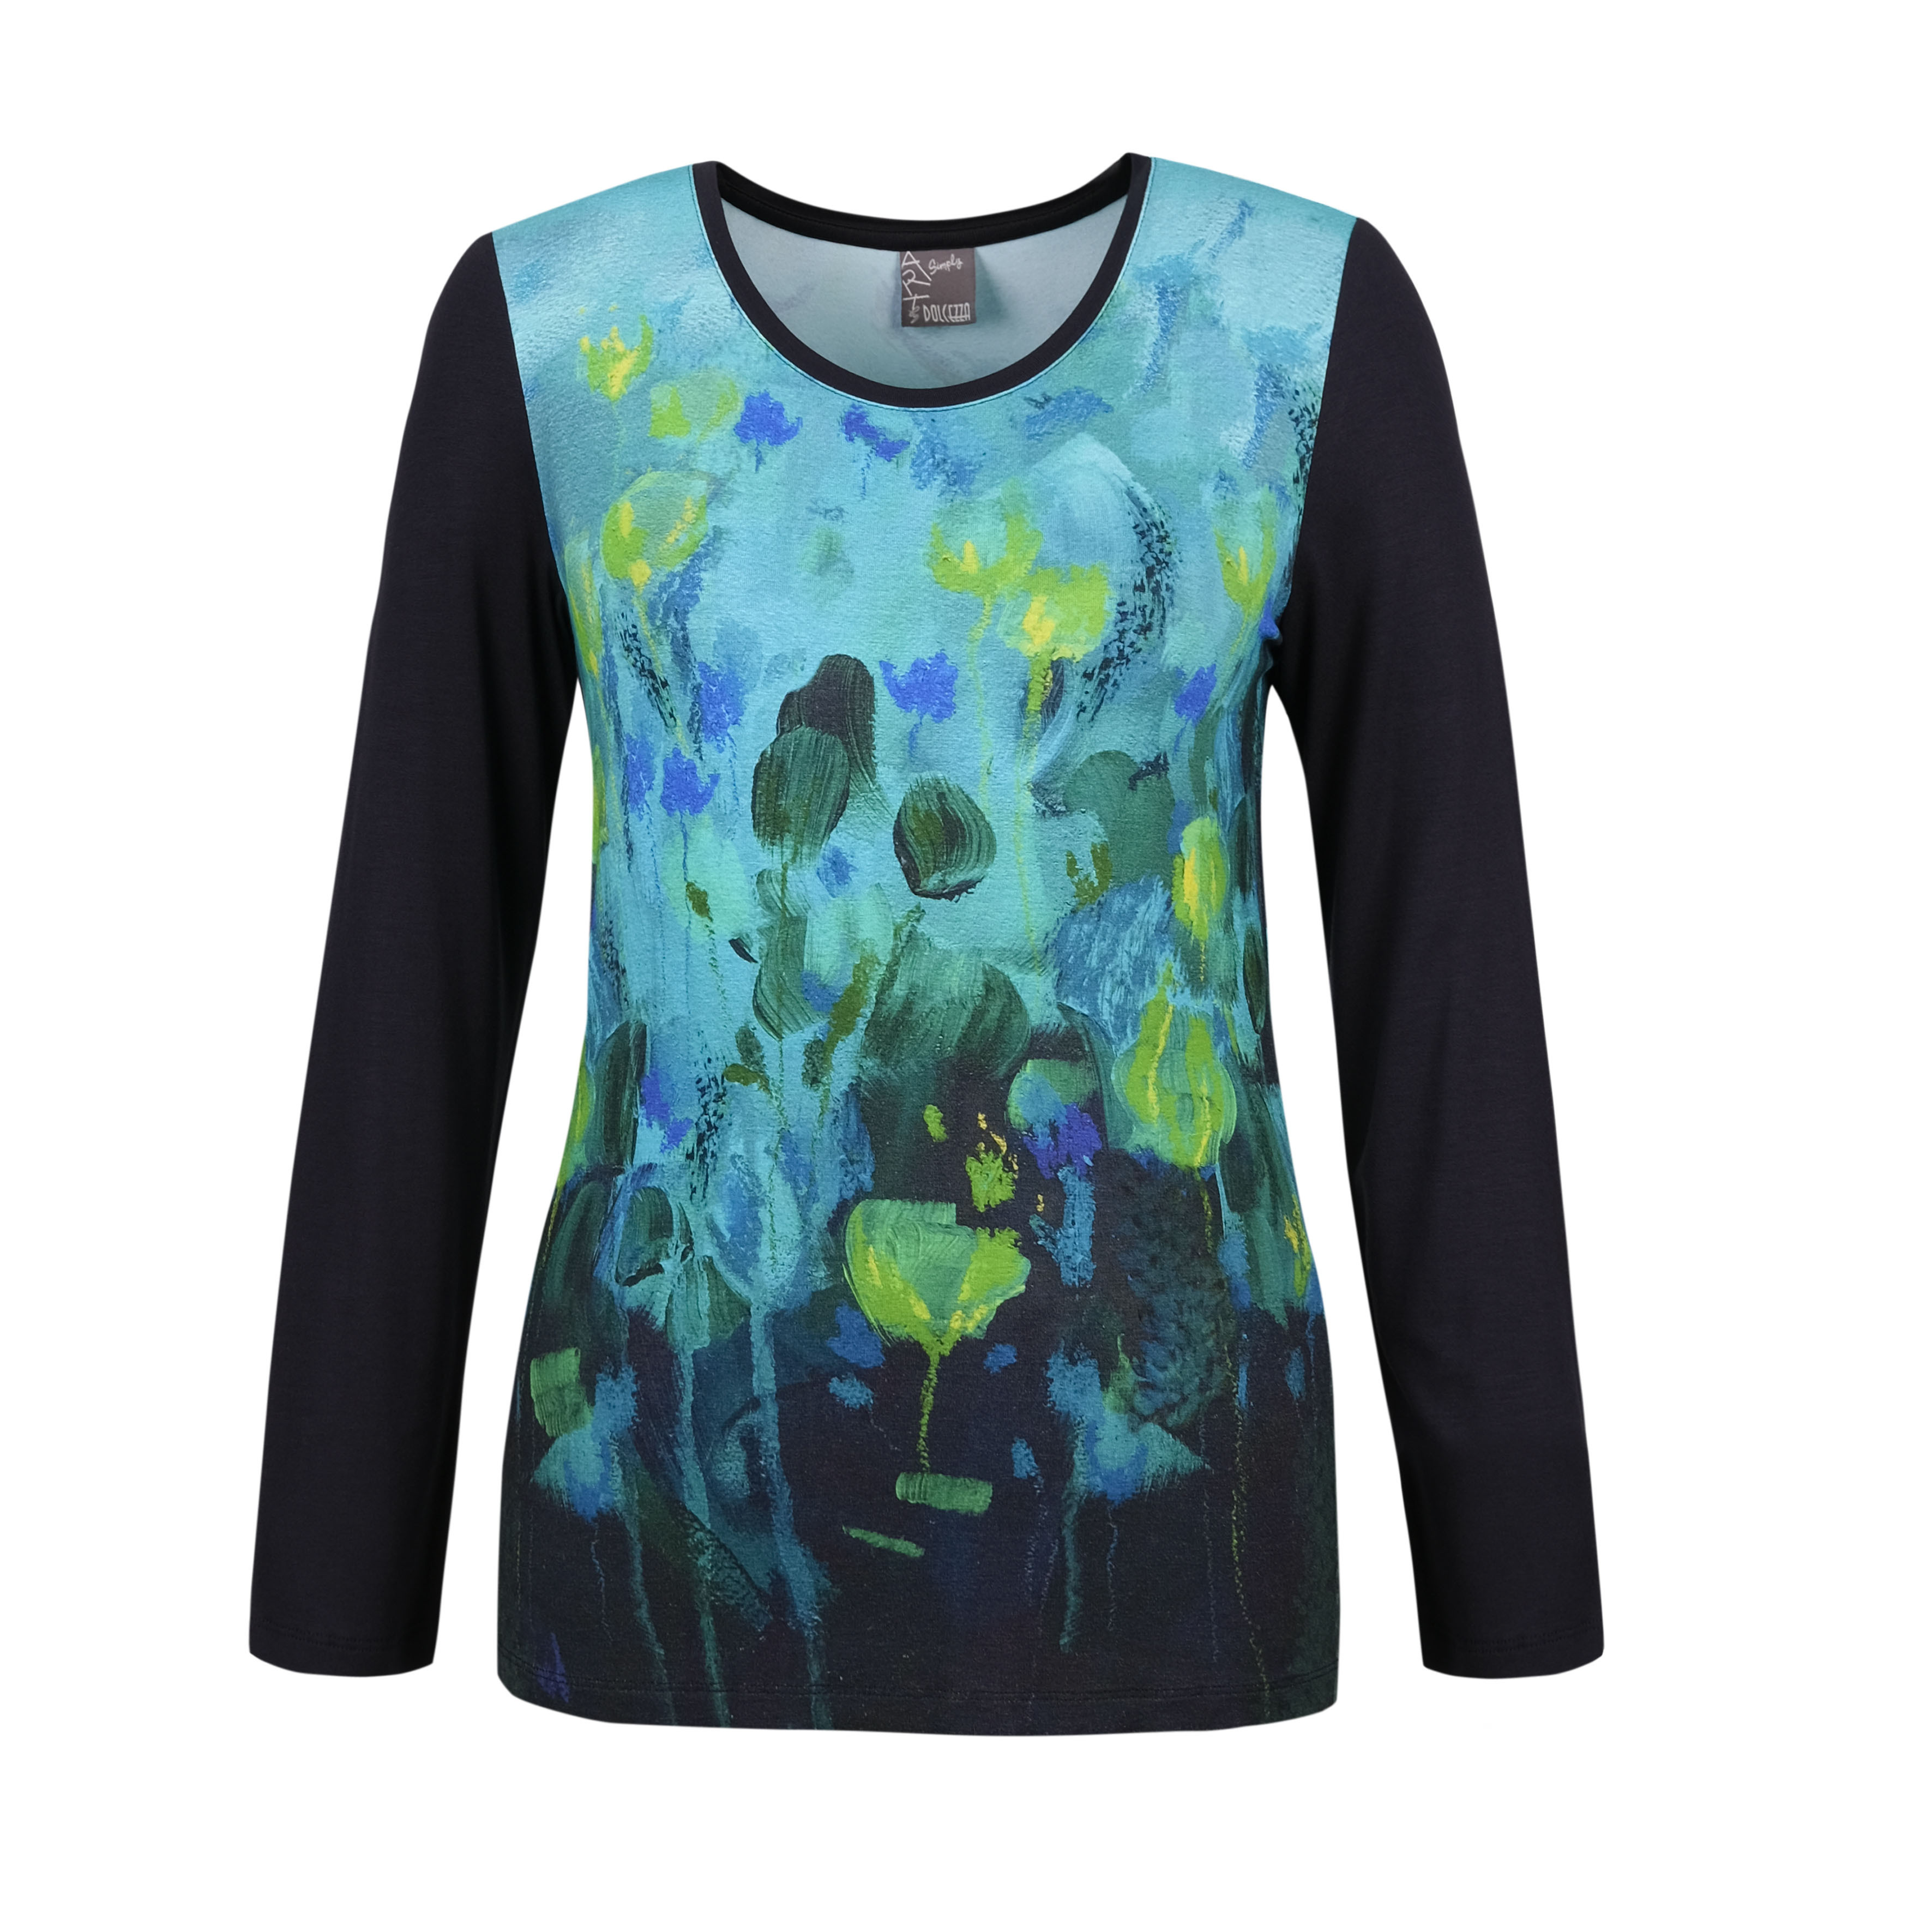 Simply Art Dolcezza: Fantaisie Floralge Abstract Art Top (1 Available at a Special Price!) Dolcezza_SimplyArt_70630